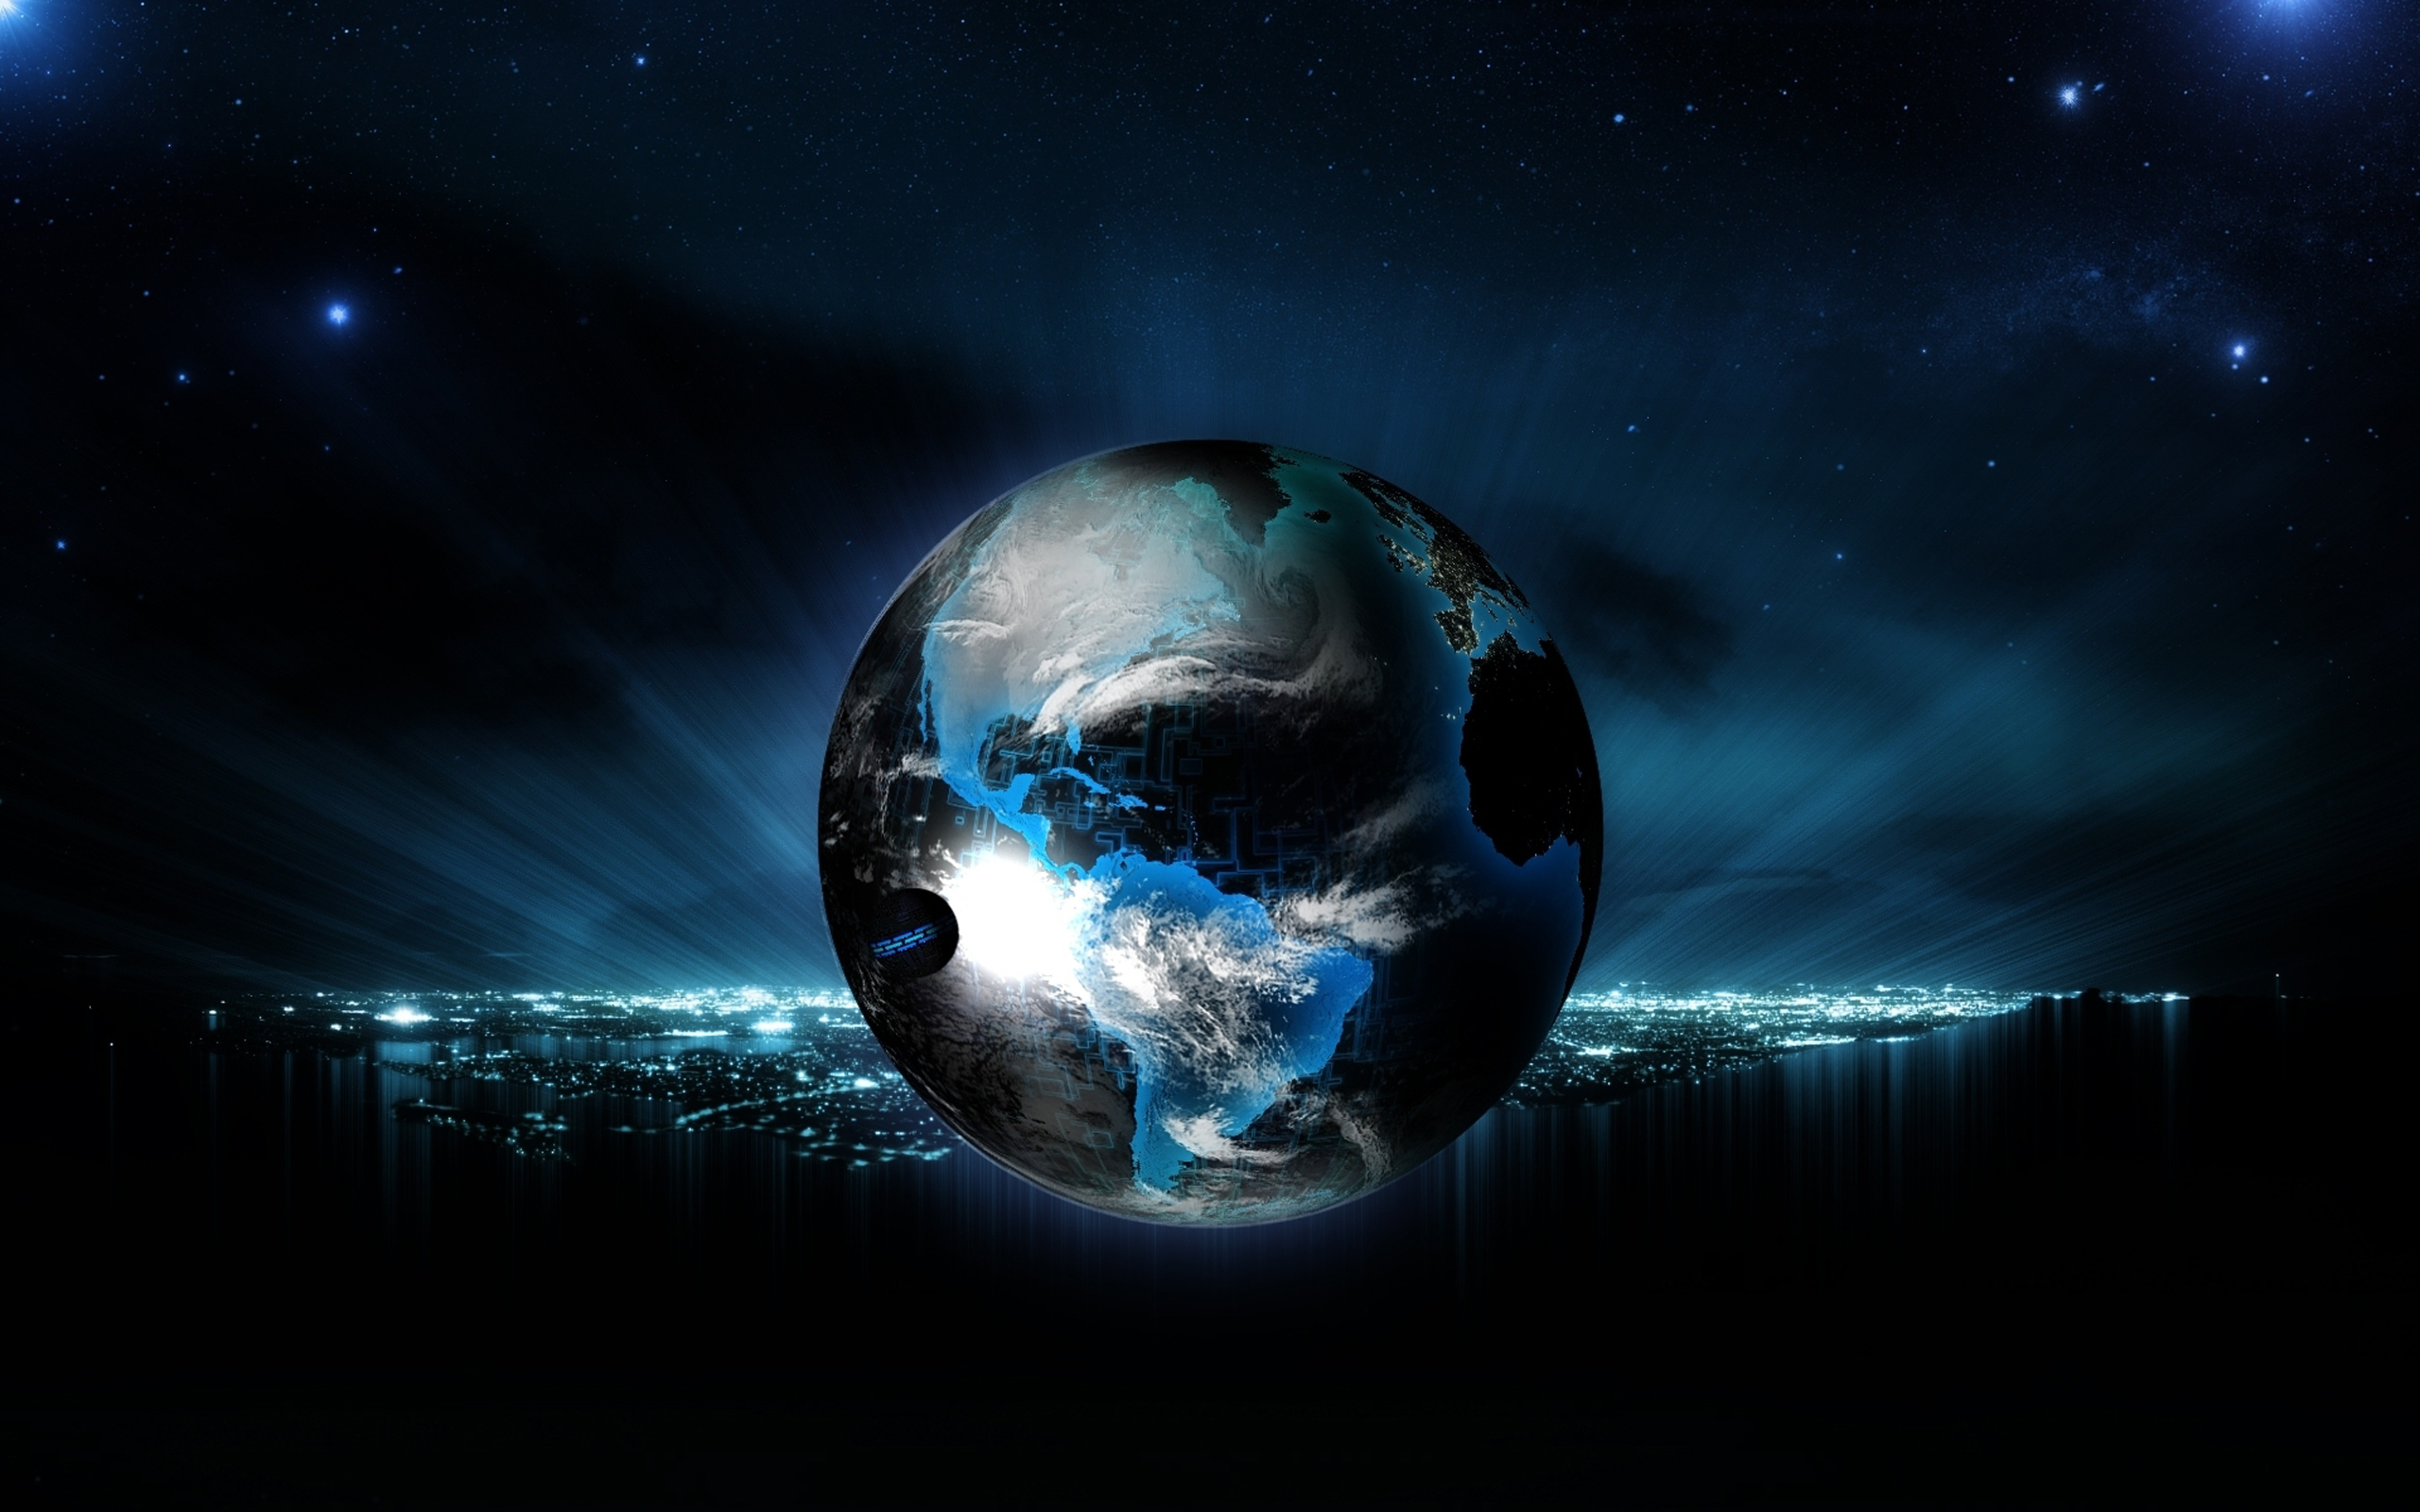 6 Earth Hd Wallpapers Backgrounds Wallpaper Abyss